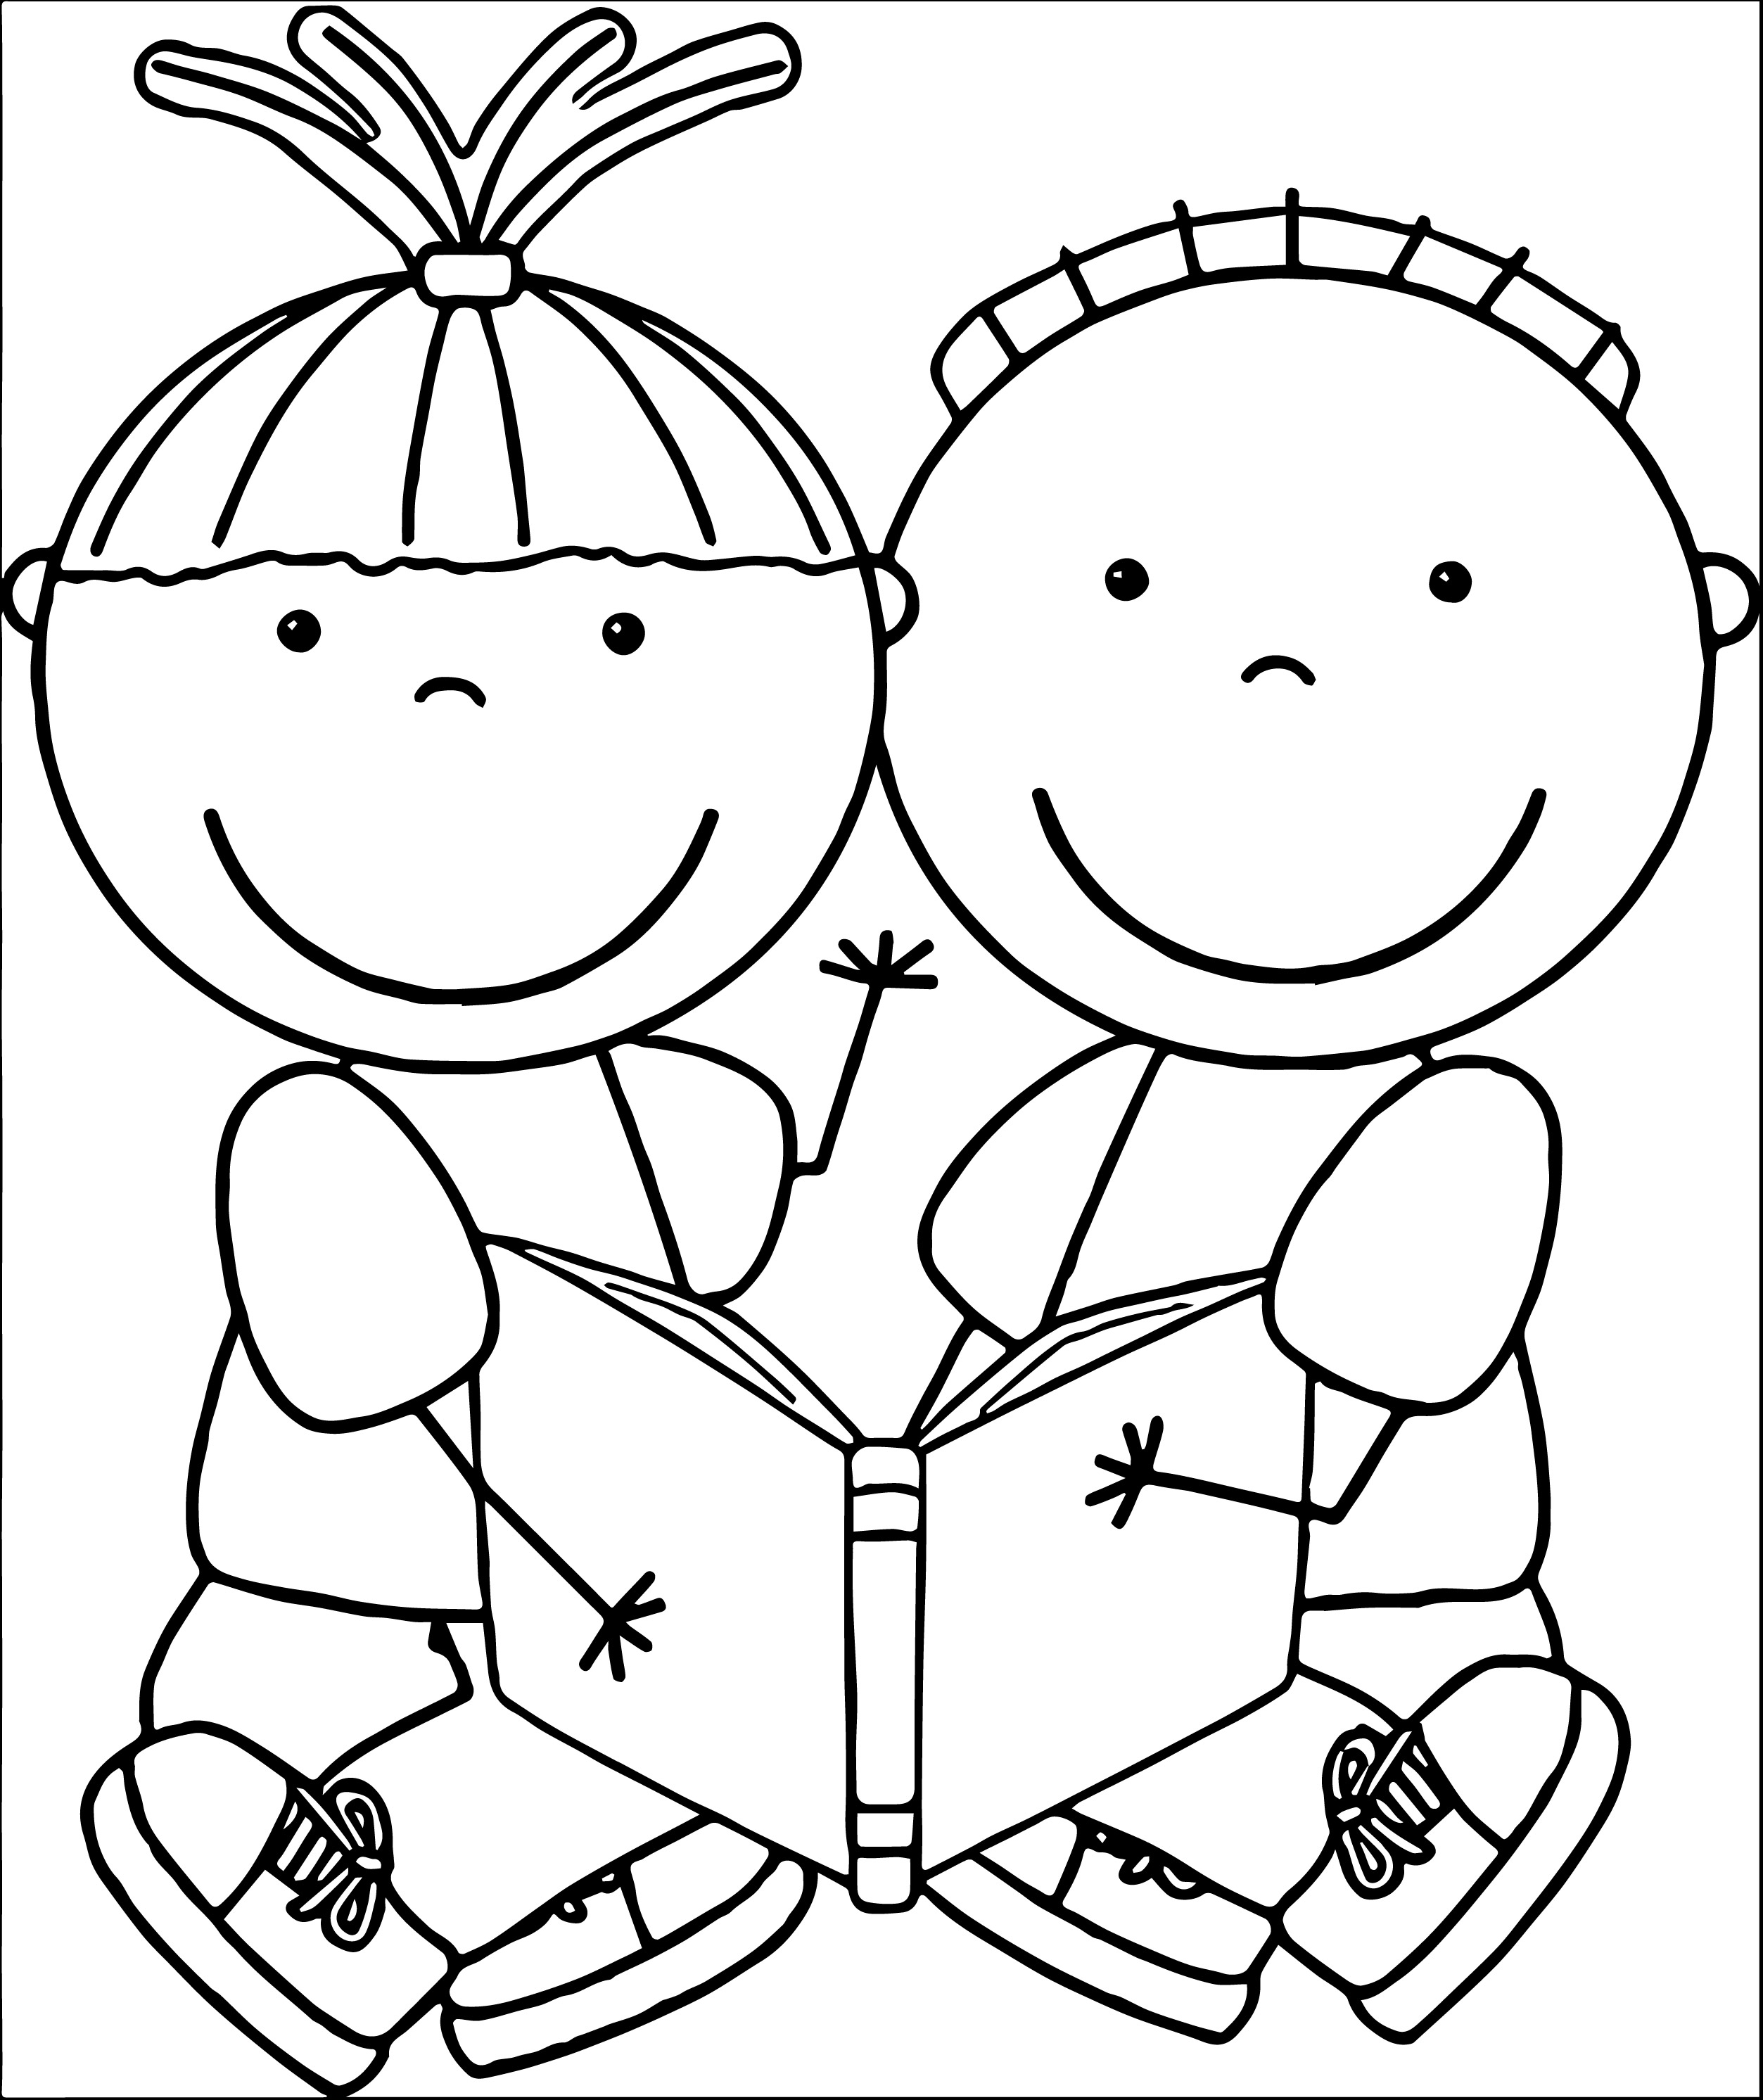 Free clipart black and white for boys. Book reading many